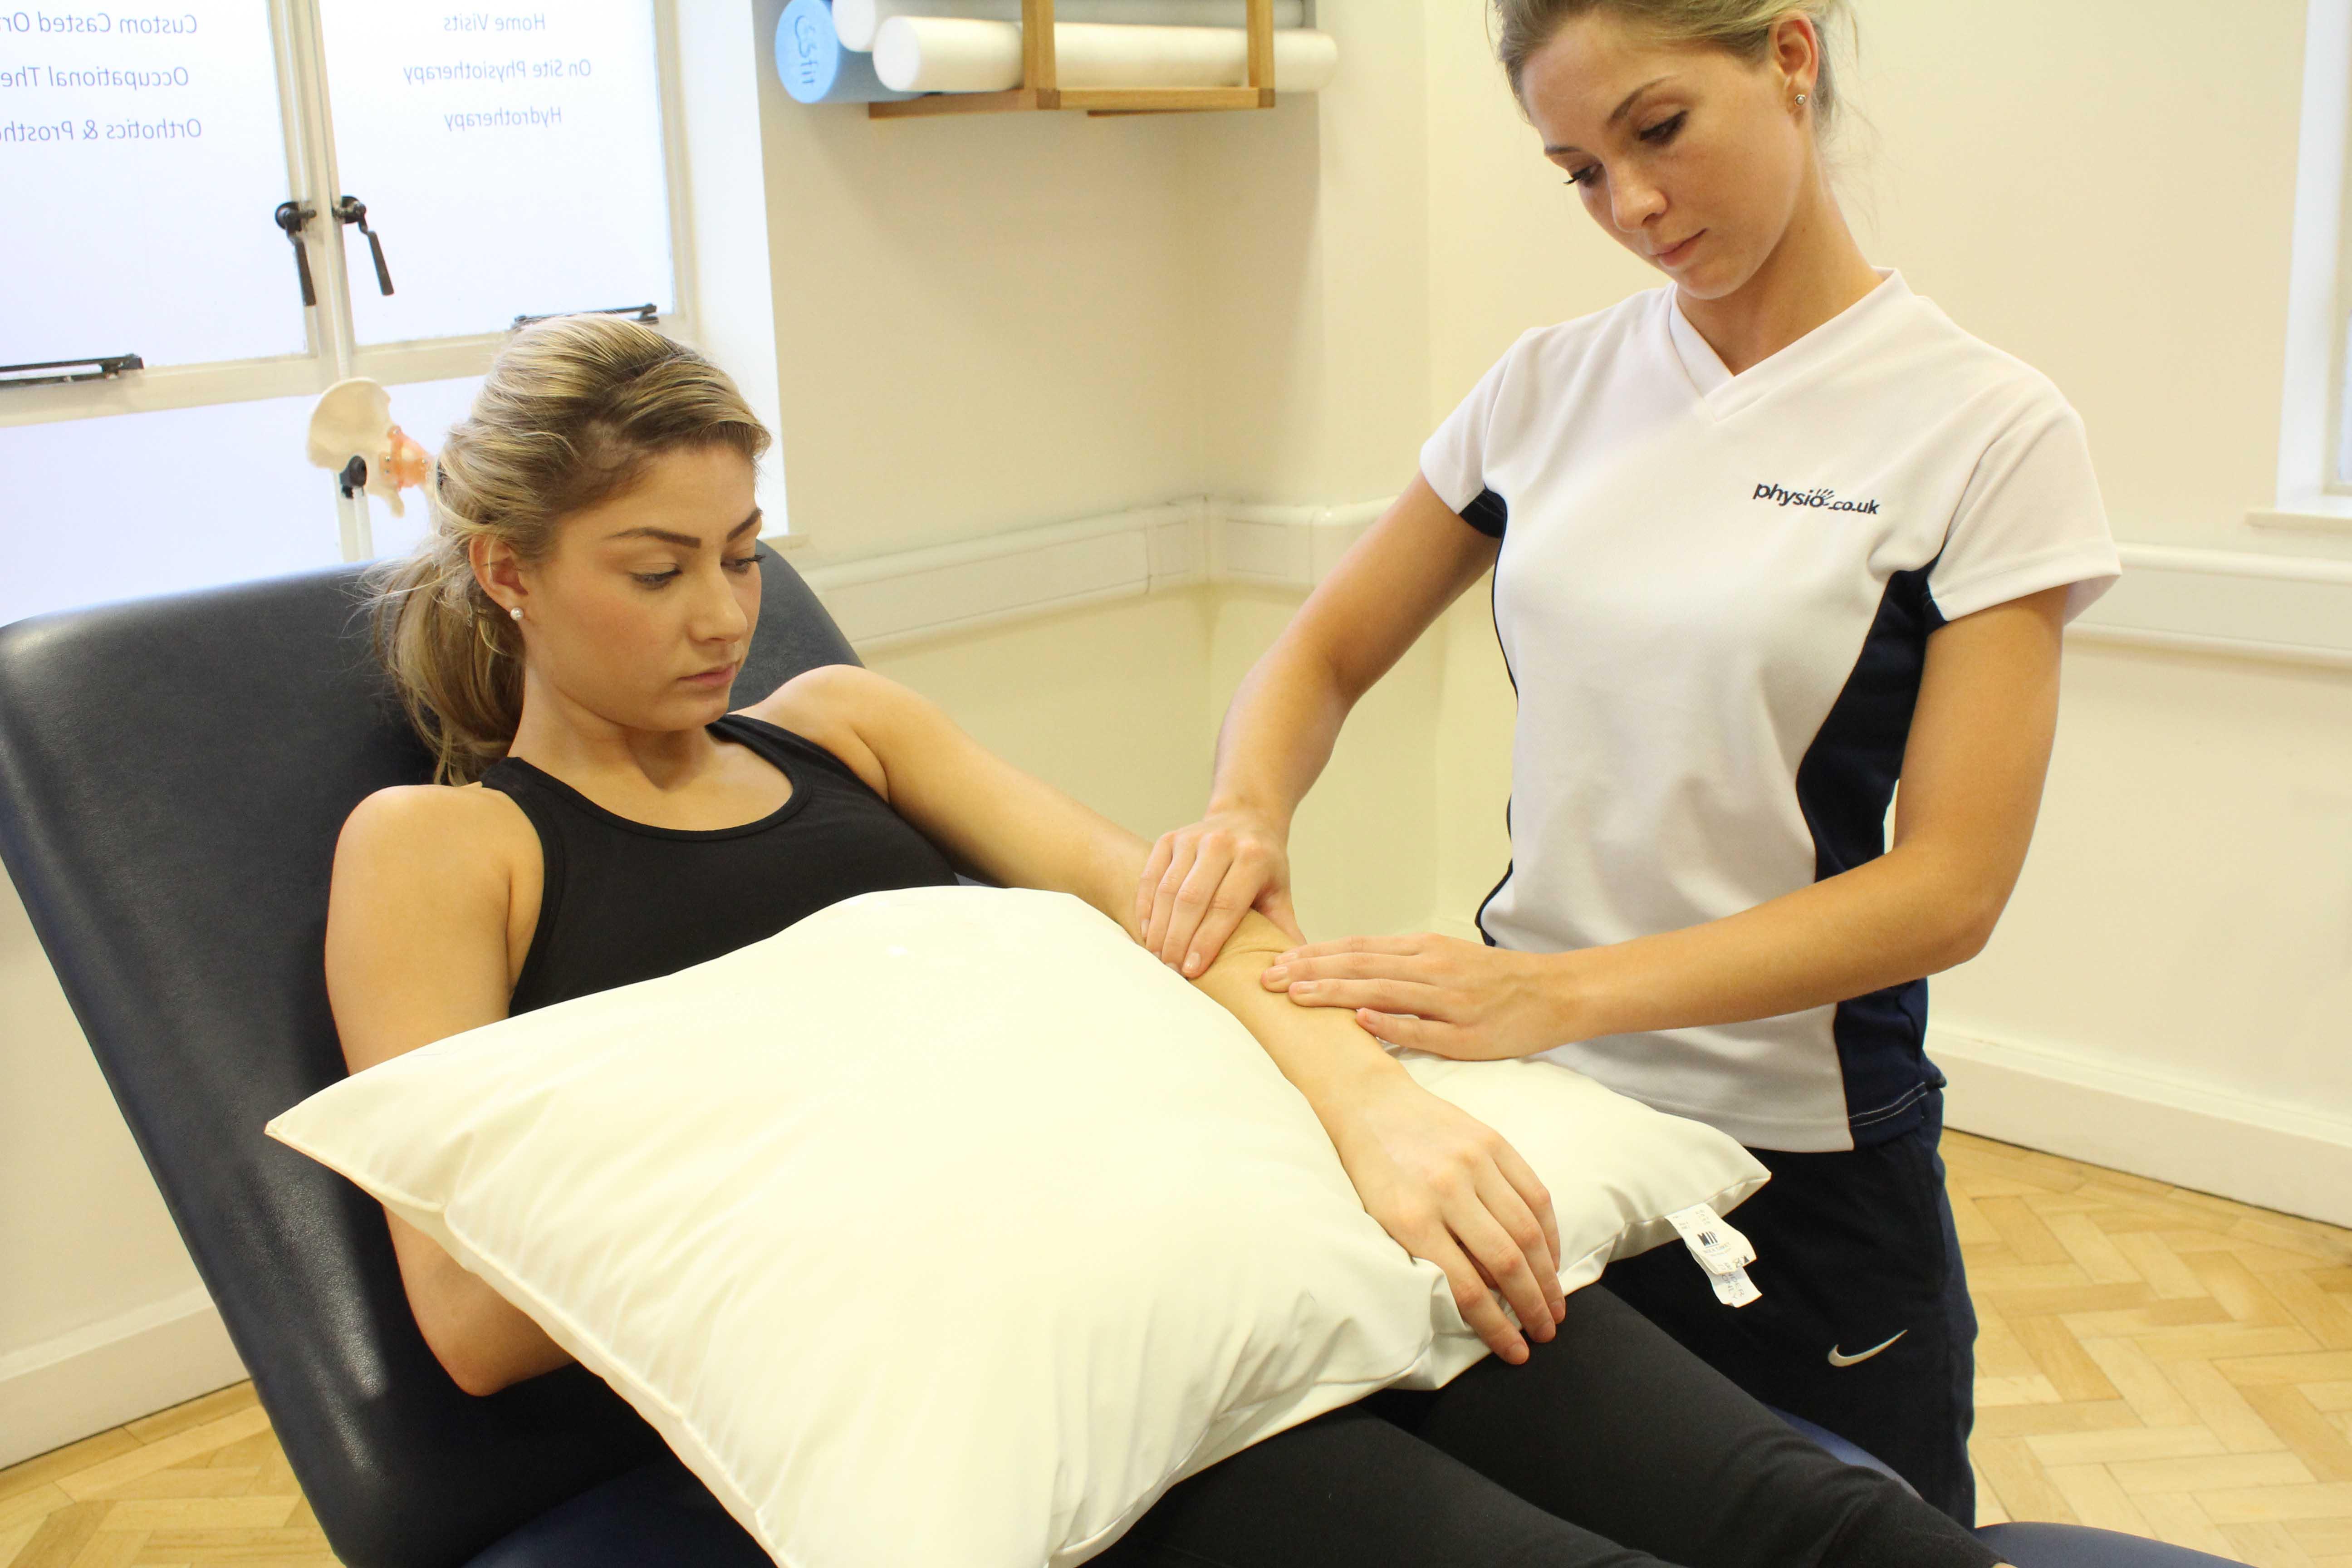 Soft tissue massage from a specialist physiotherapist to relieve pain